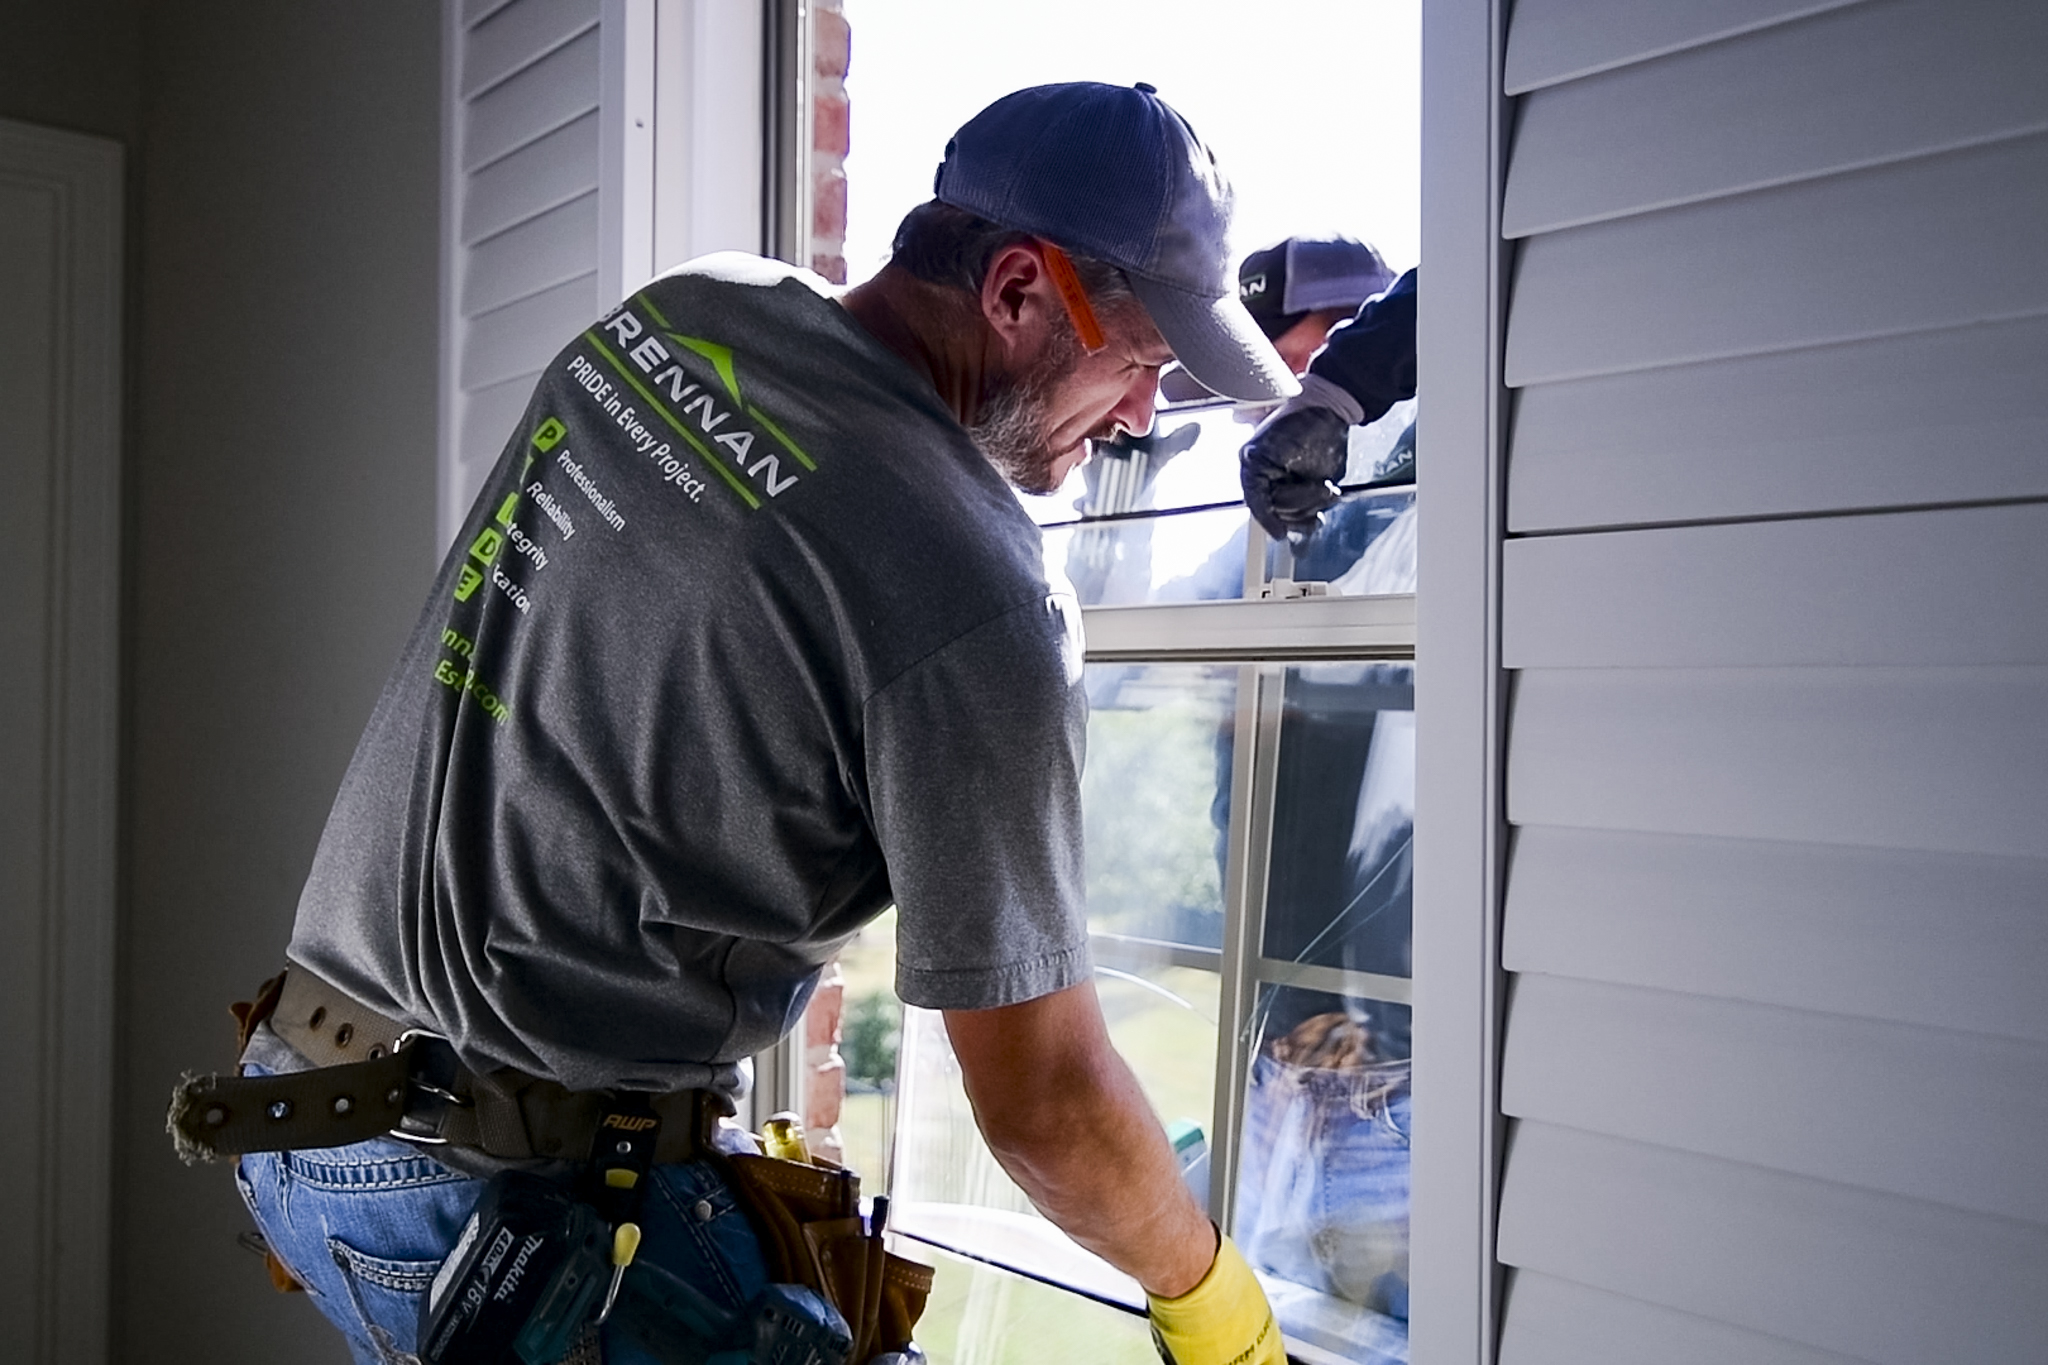 Brennan installed energy efficient windows